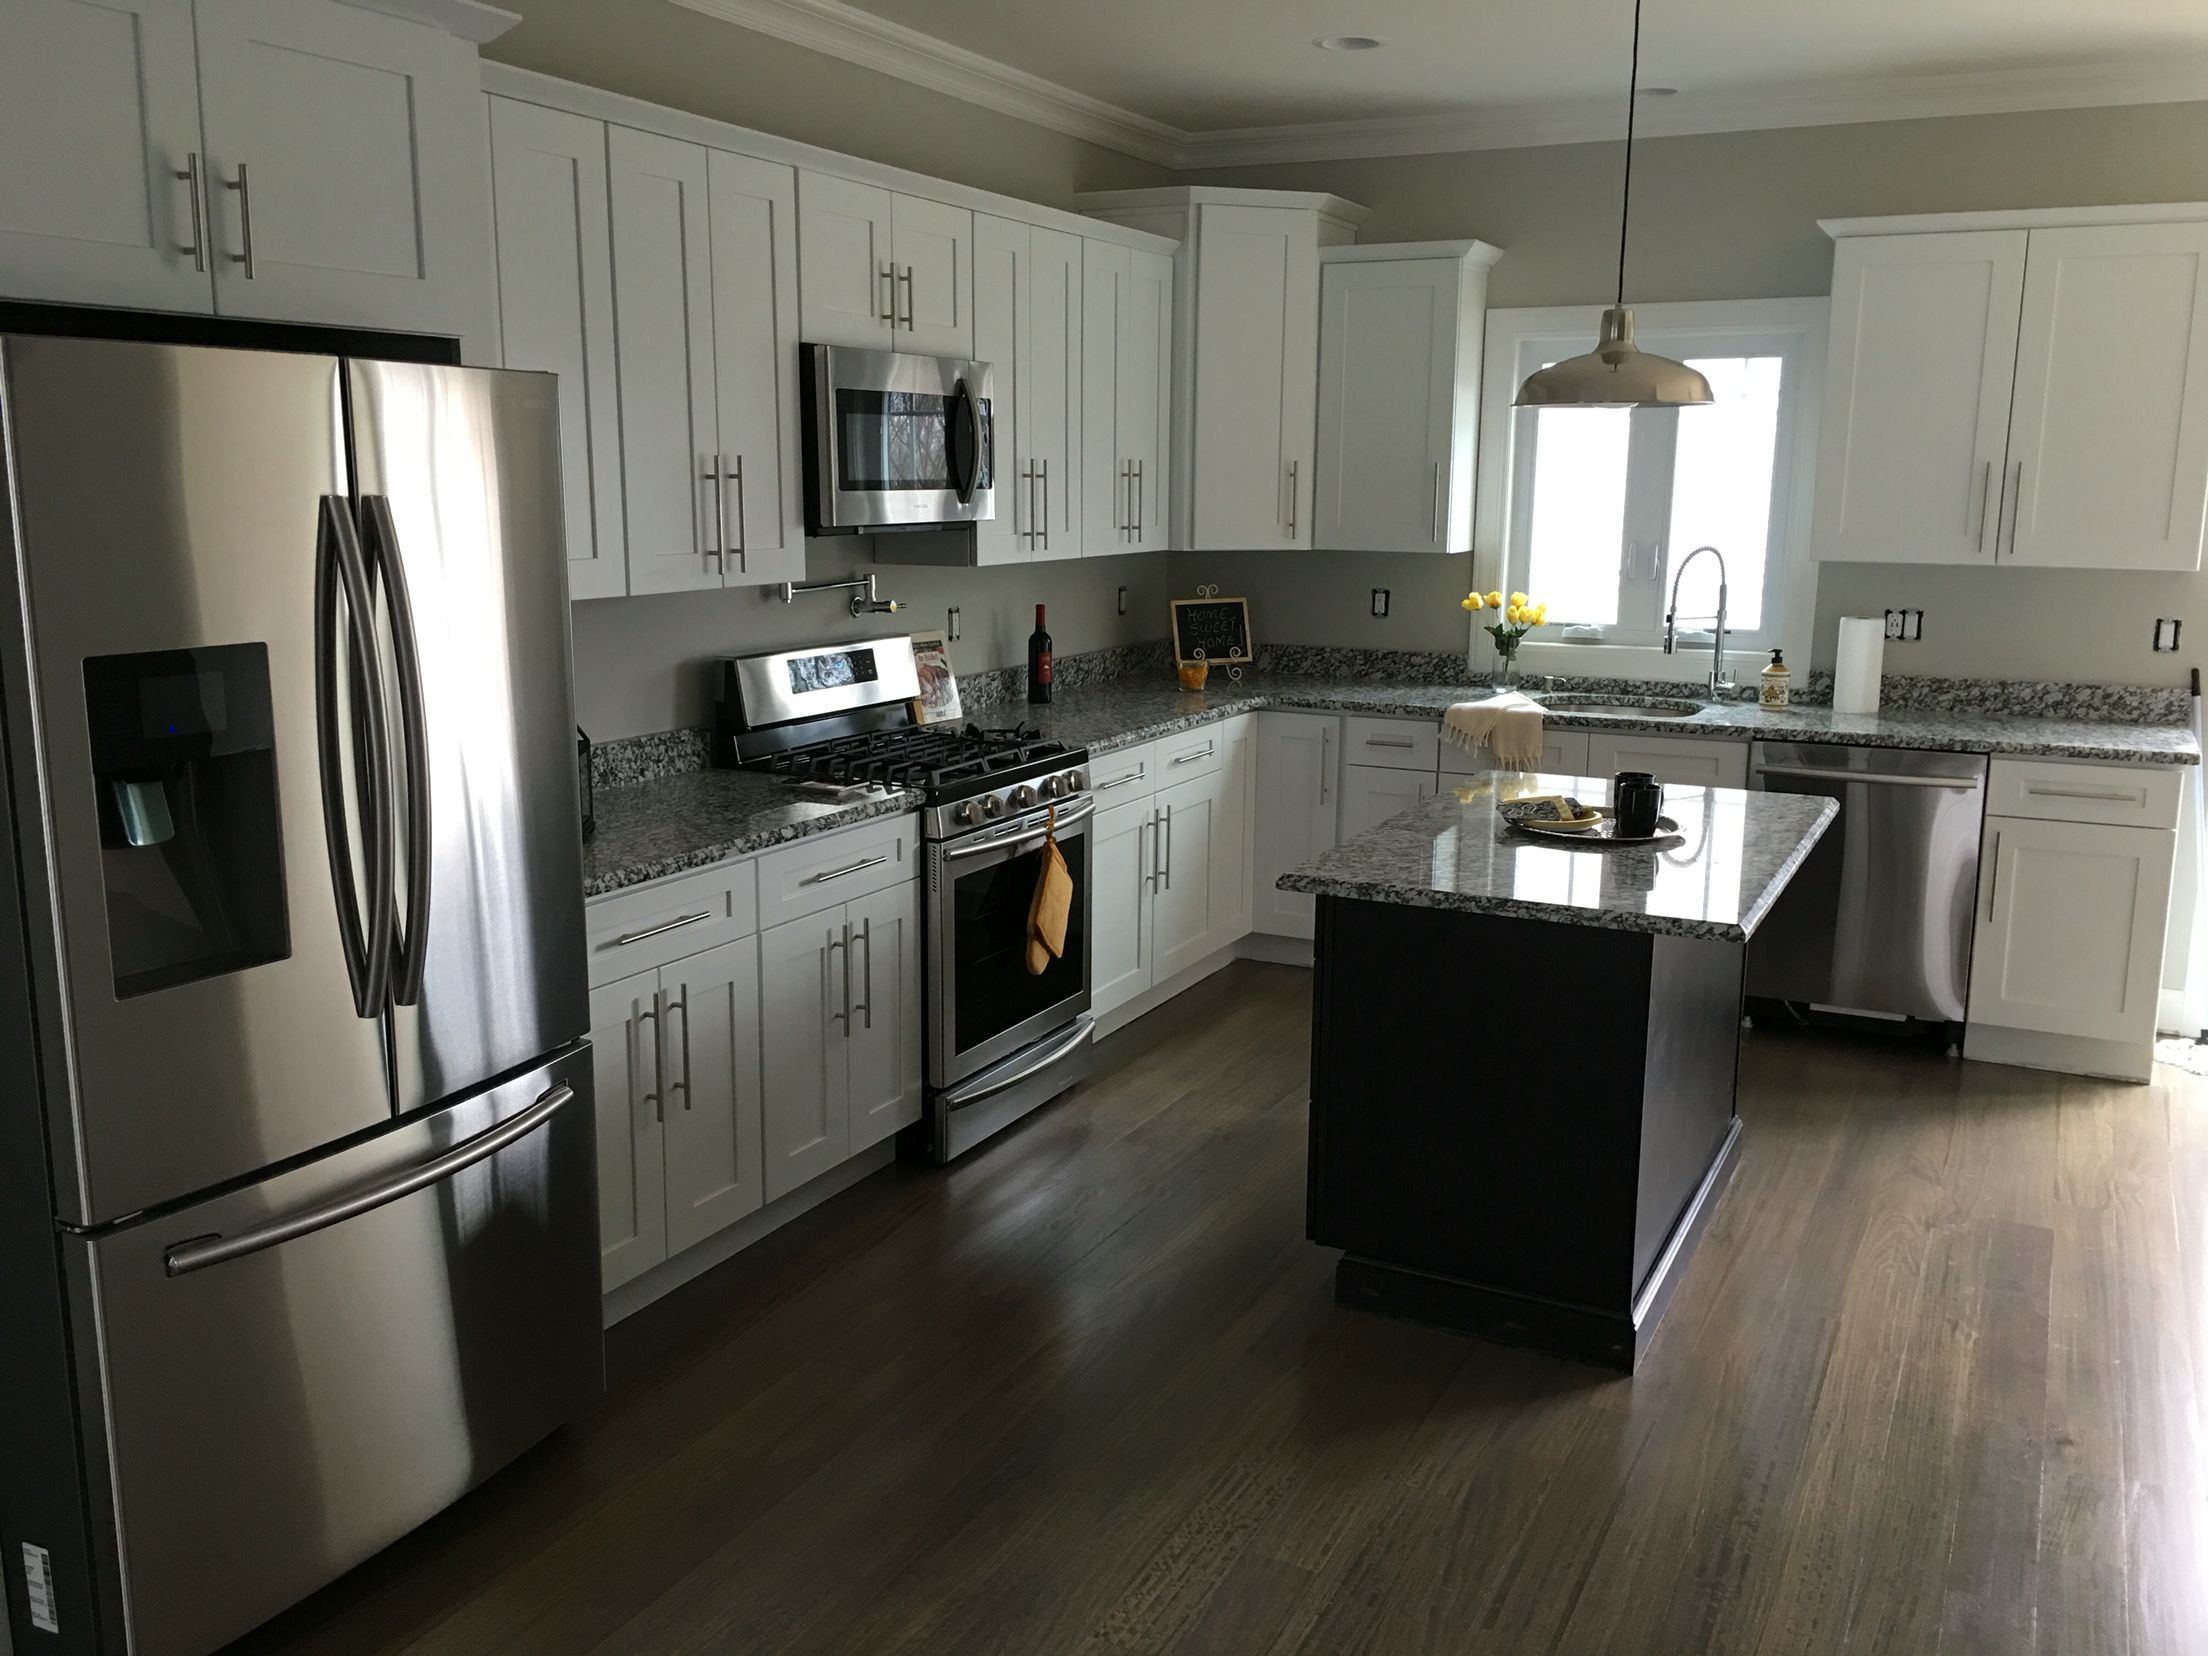 Discount Granite Countertops Nj Gran Perla Granite And White Cubitac Rta Cabinets